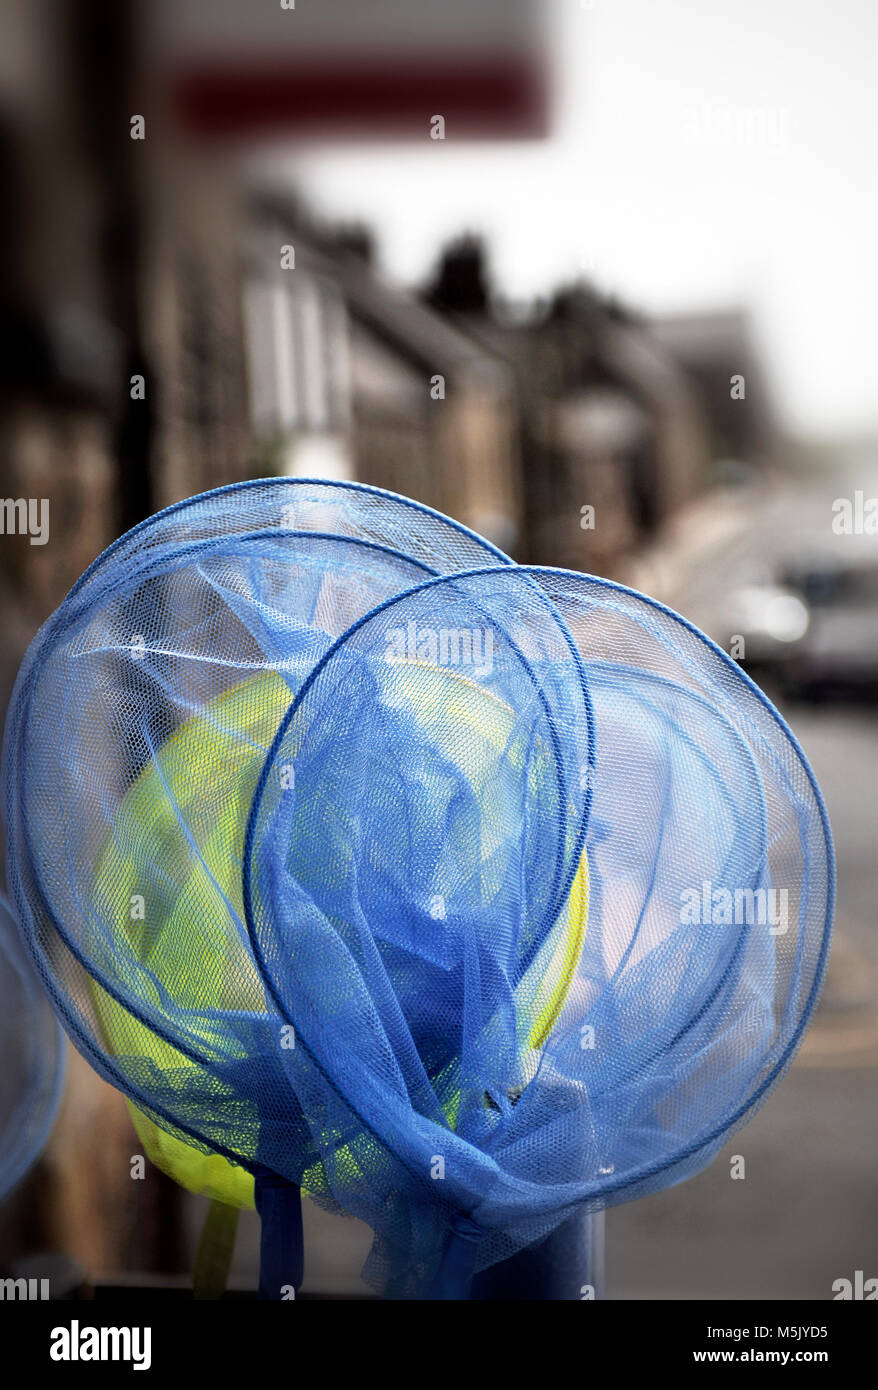 childrens fishing nets outside shop in high street - Stock Image